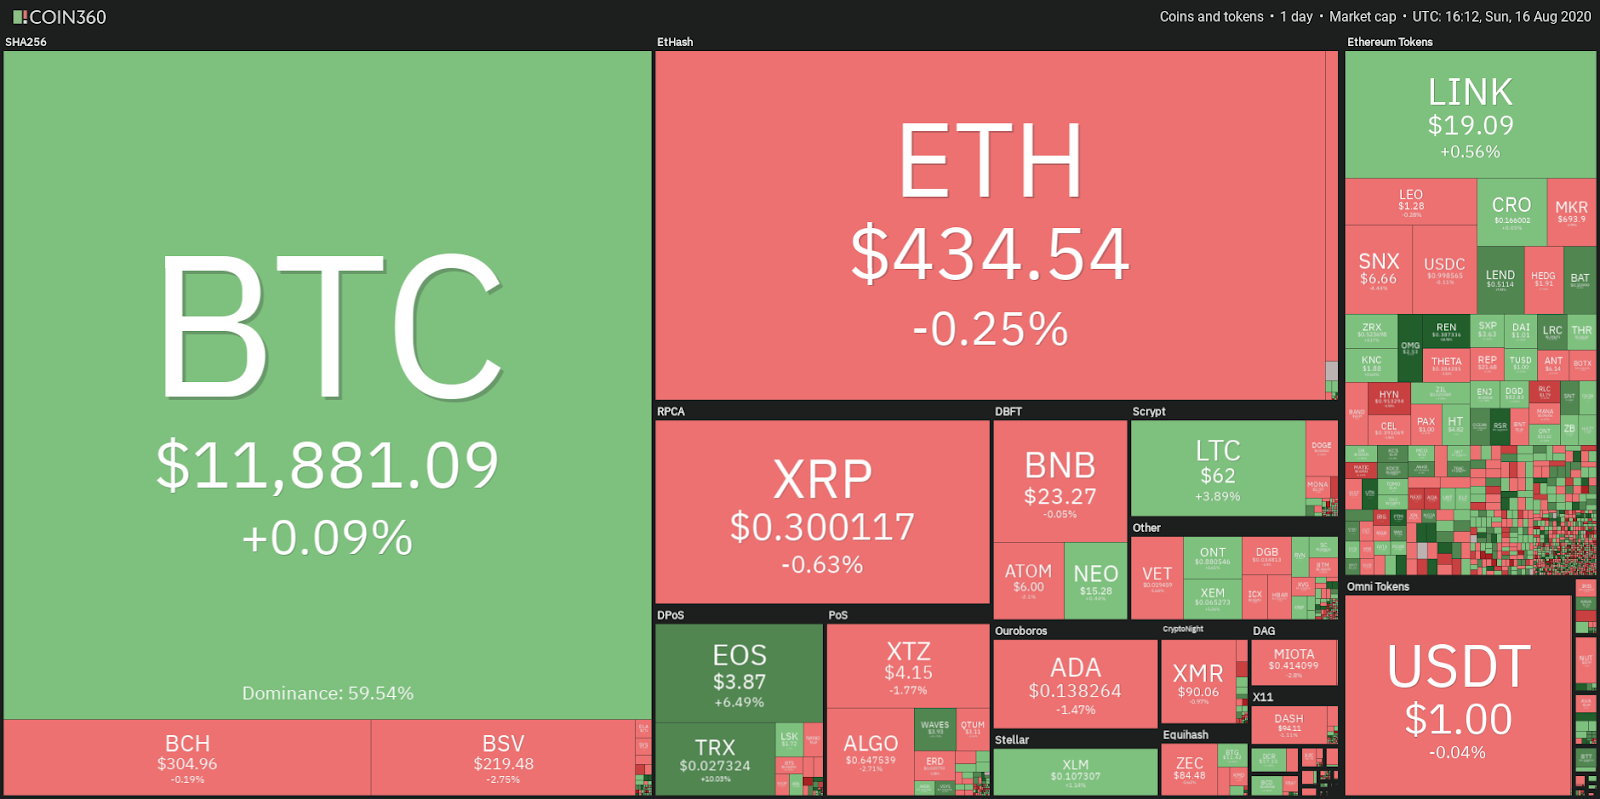 Day view of crypto market data